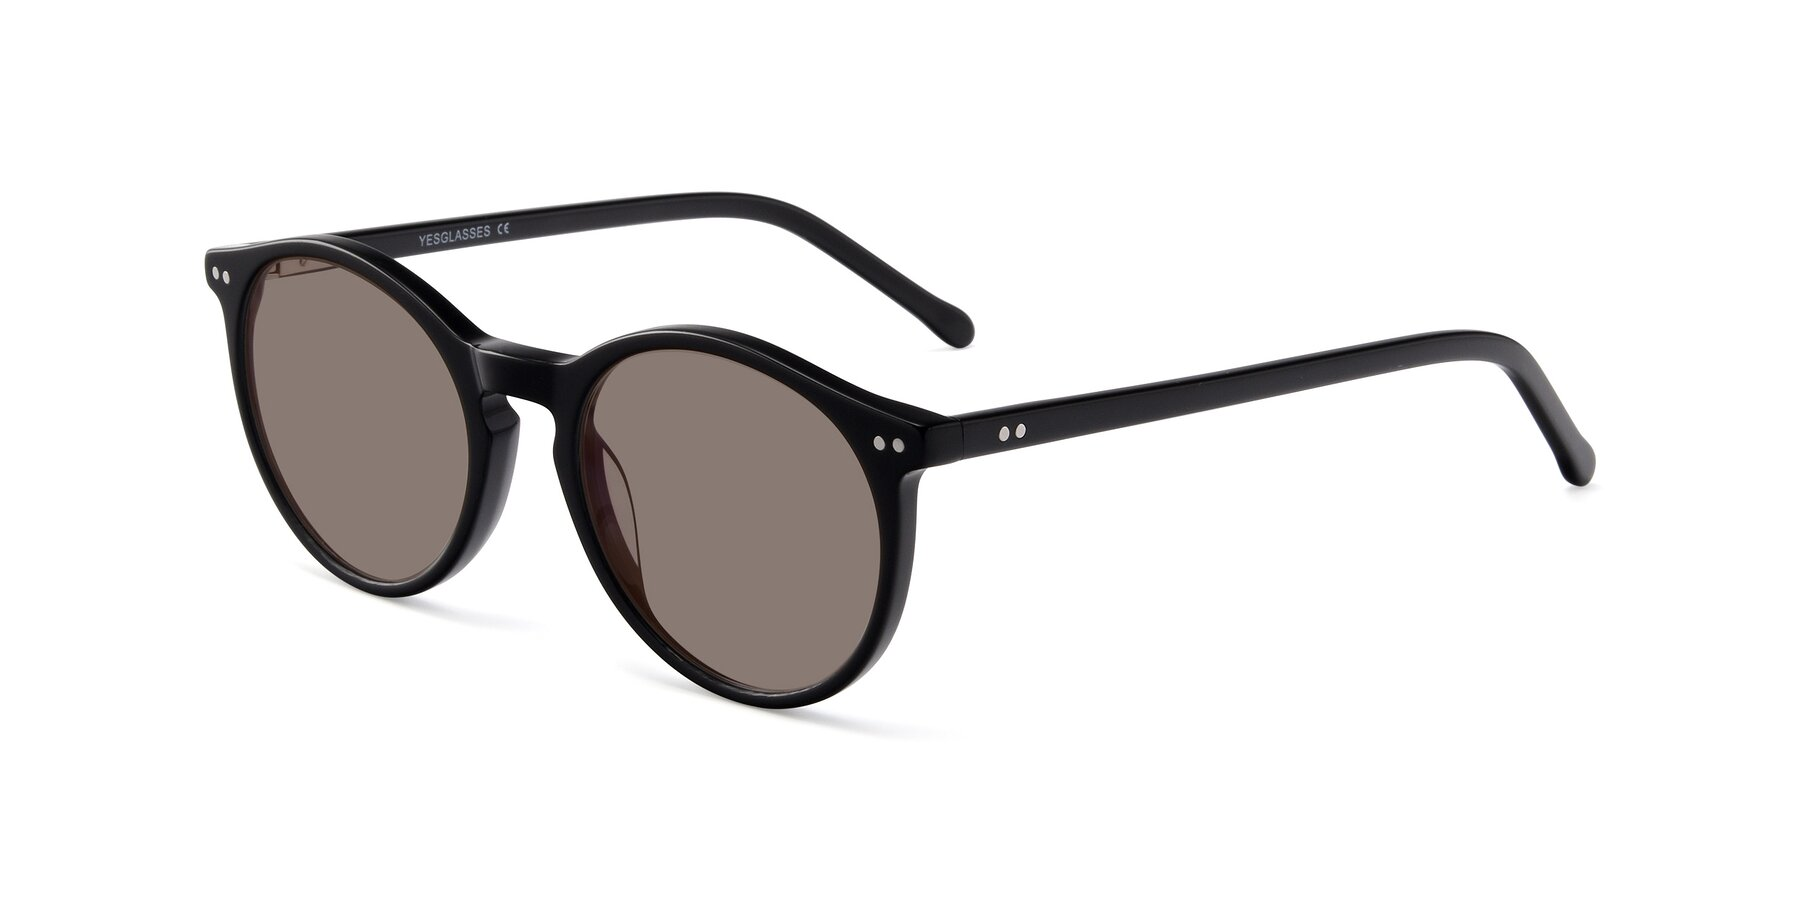 Angle of JS9026A in Black with Medium Brown Tinted Lenses